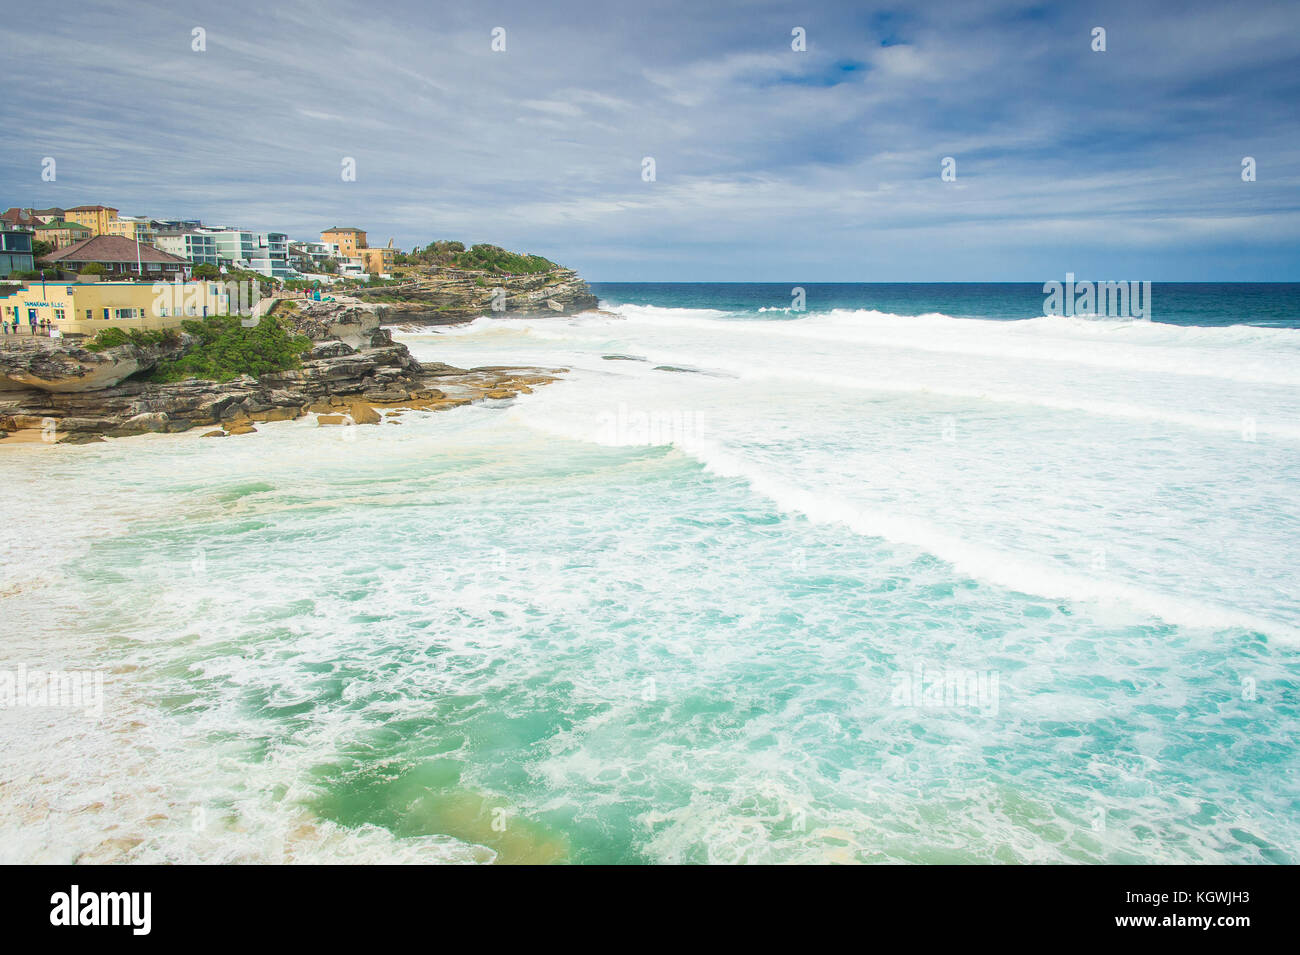 Dangerous surf conditions at Tamarama Beach in Sydney, NSW